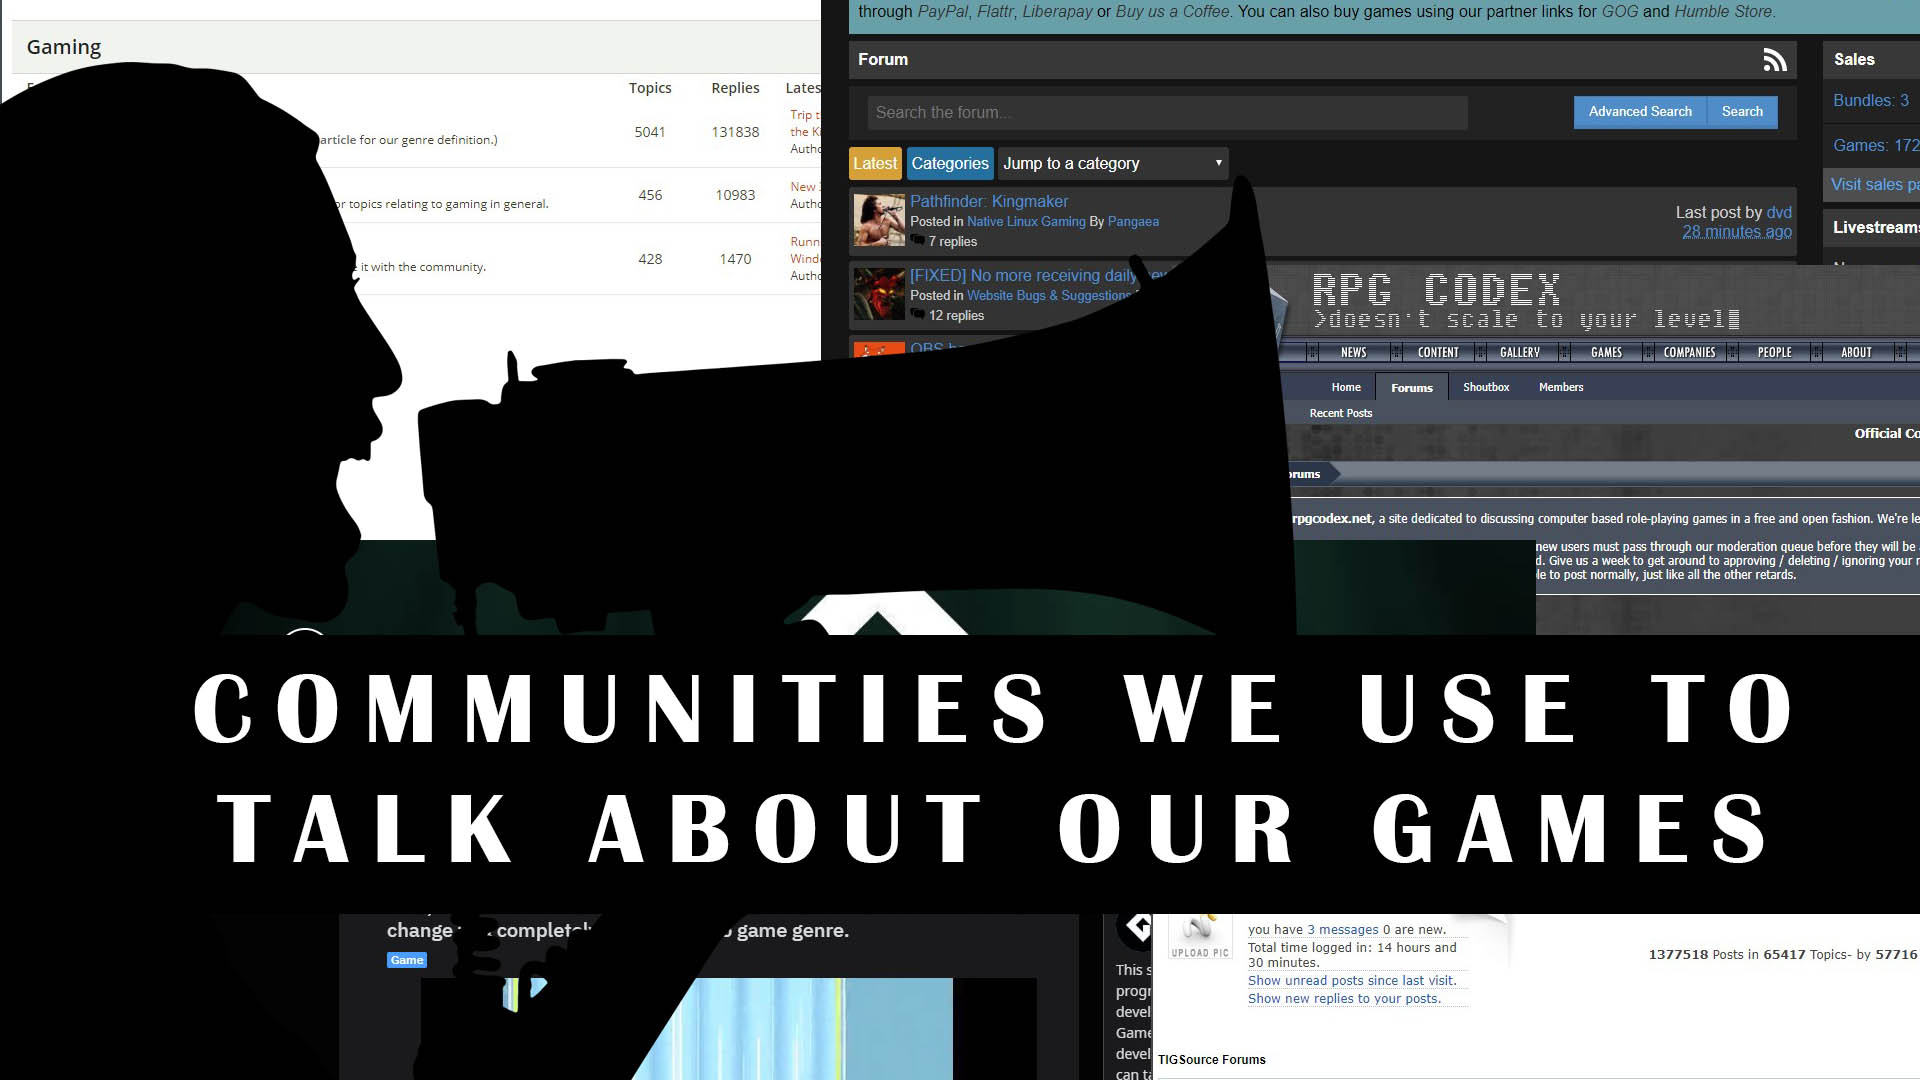 Communities we use to talk about our games